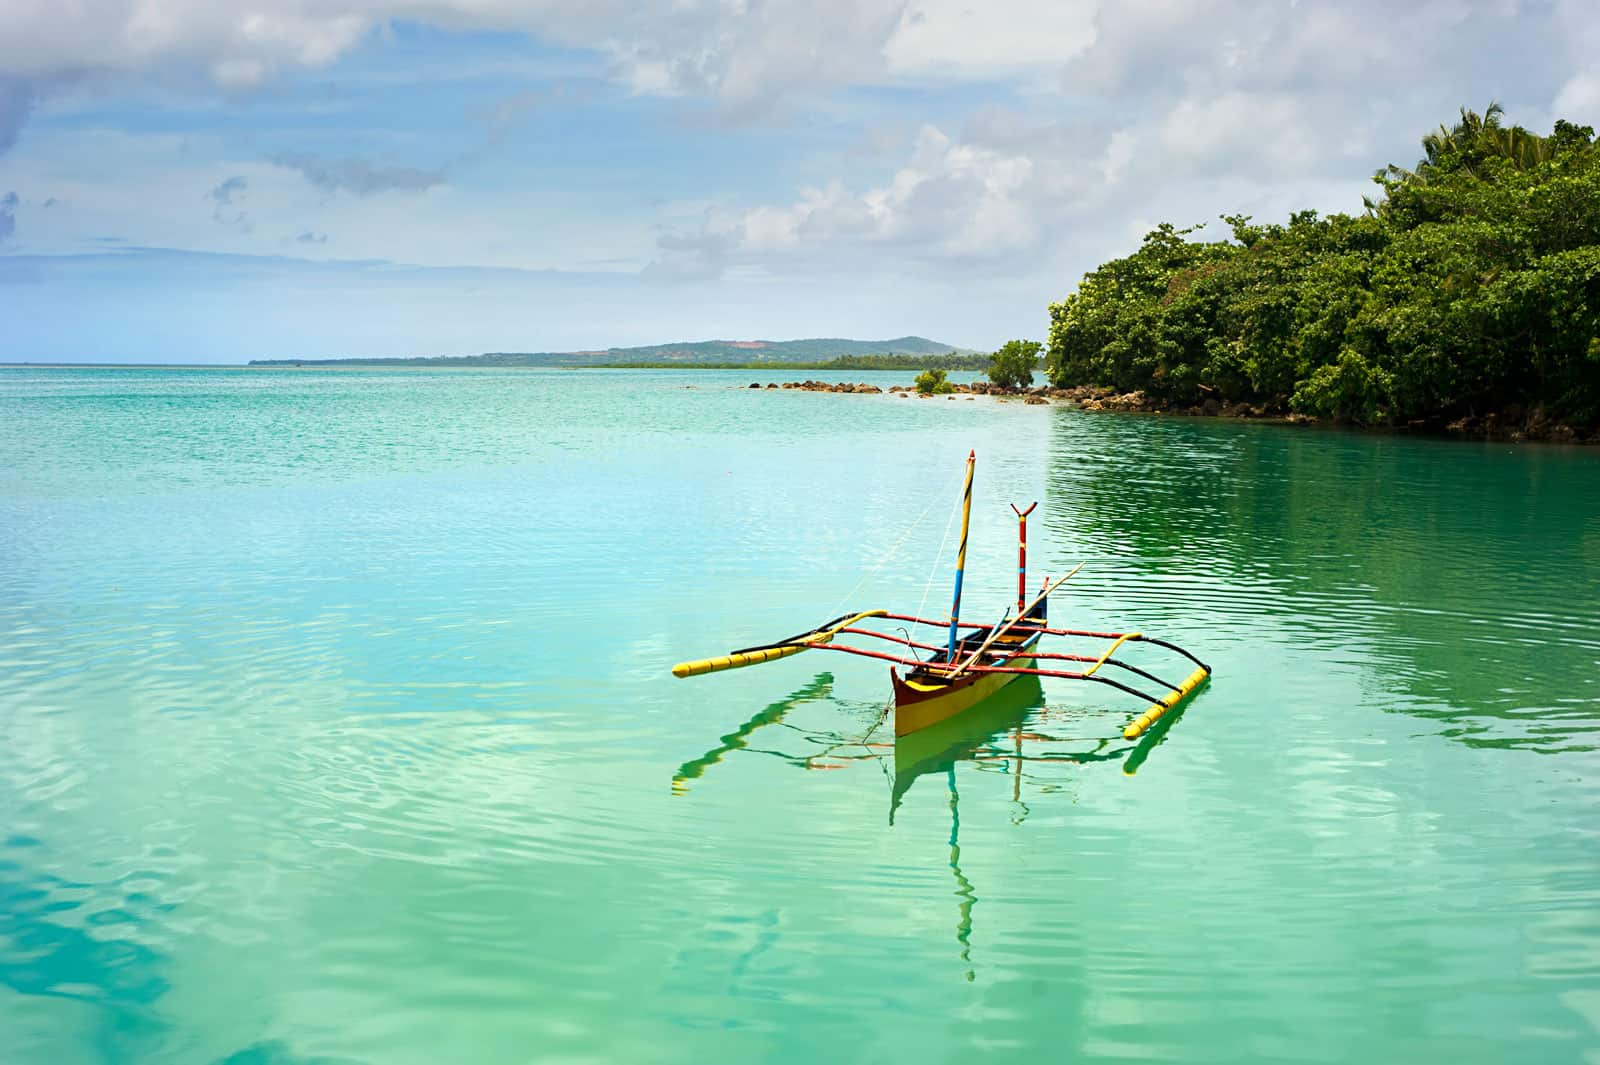 Boat at Calicoan Island, Philippines